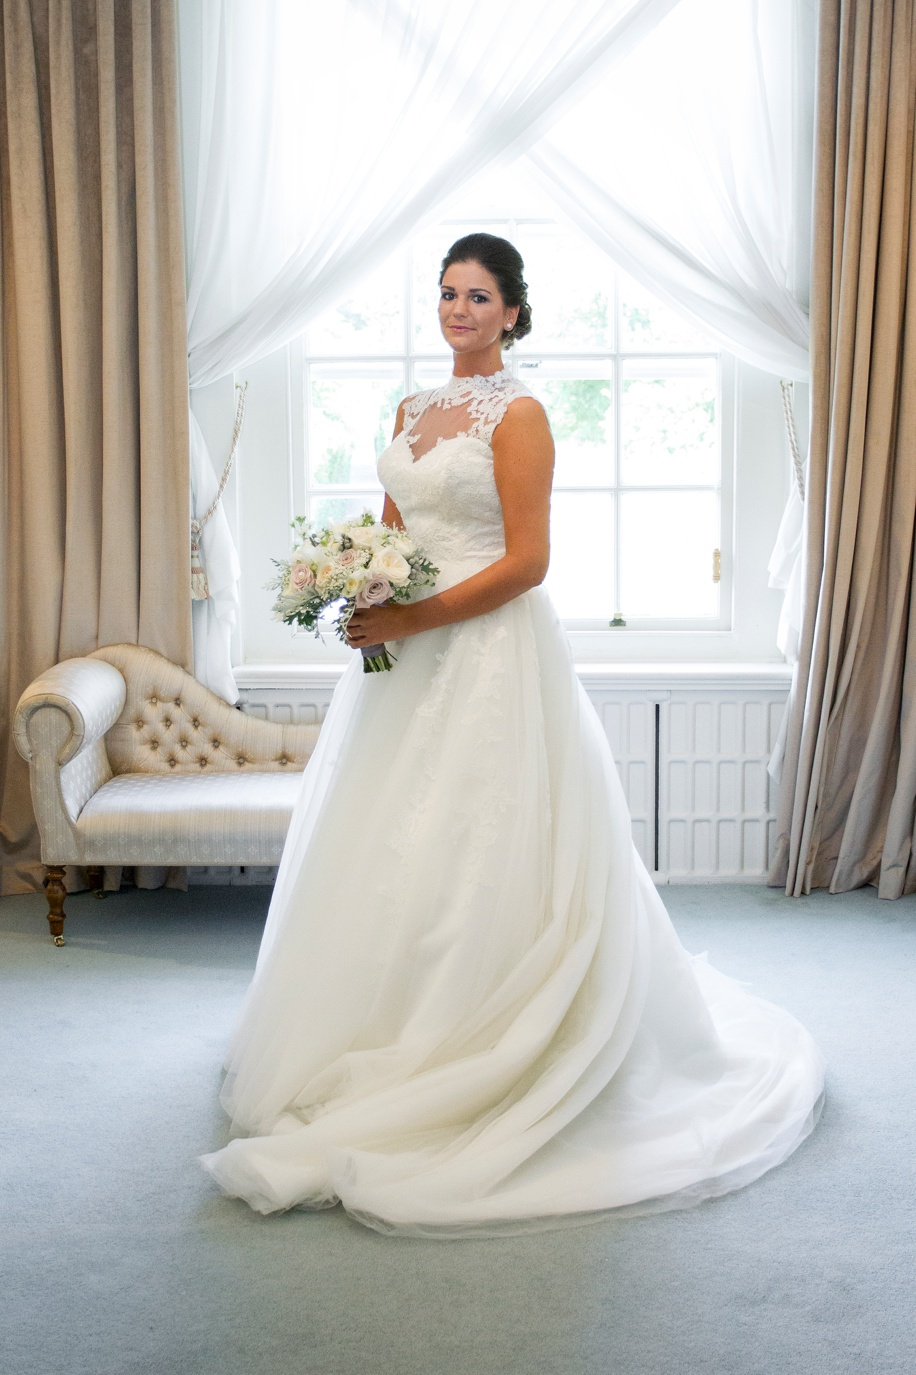 Beautiful Bride and wedding photographs at Northcote House